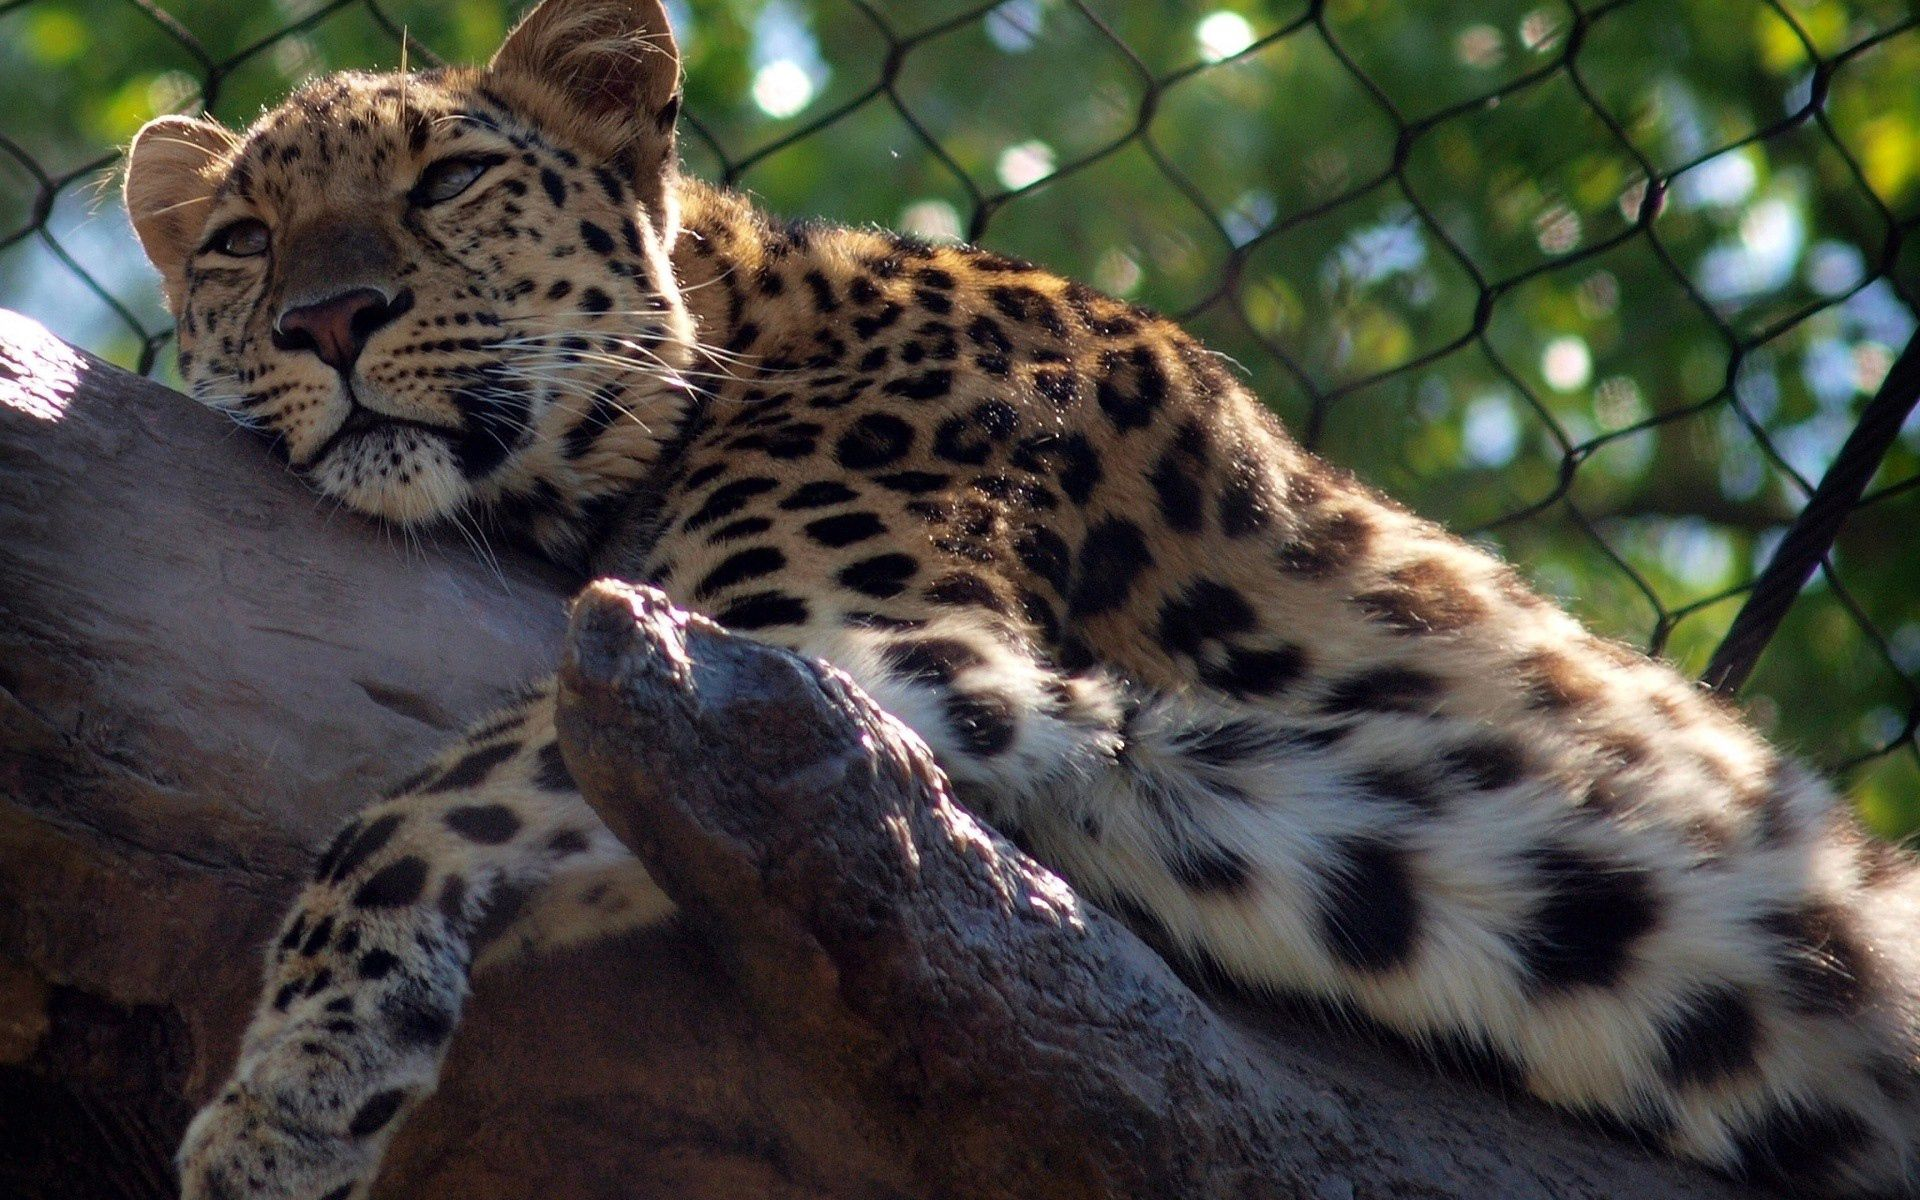 105627 download wallpaper Animals, Leopard, Predator, Big Cat screensavers and pictures for free